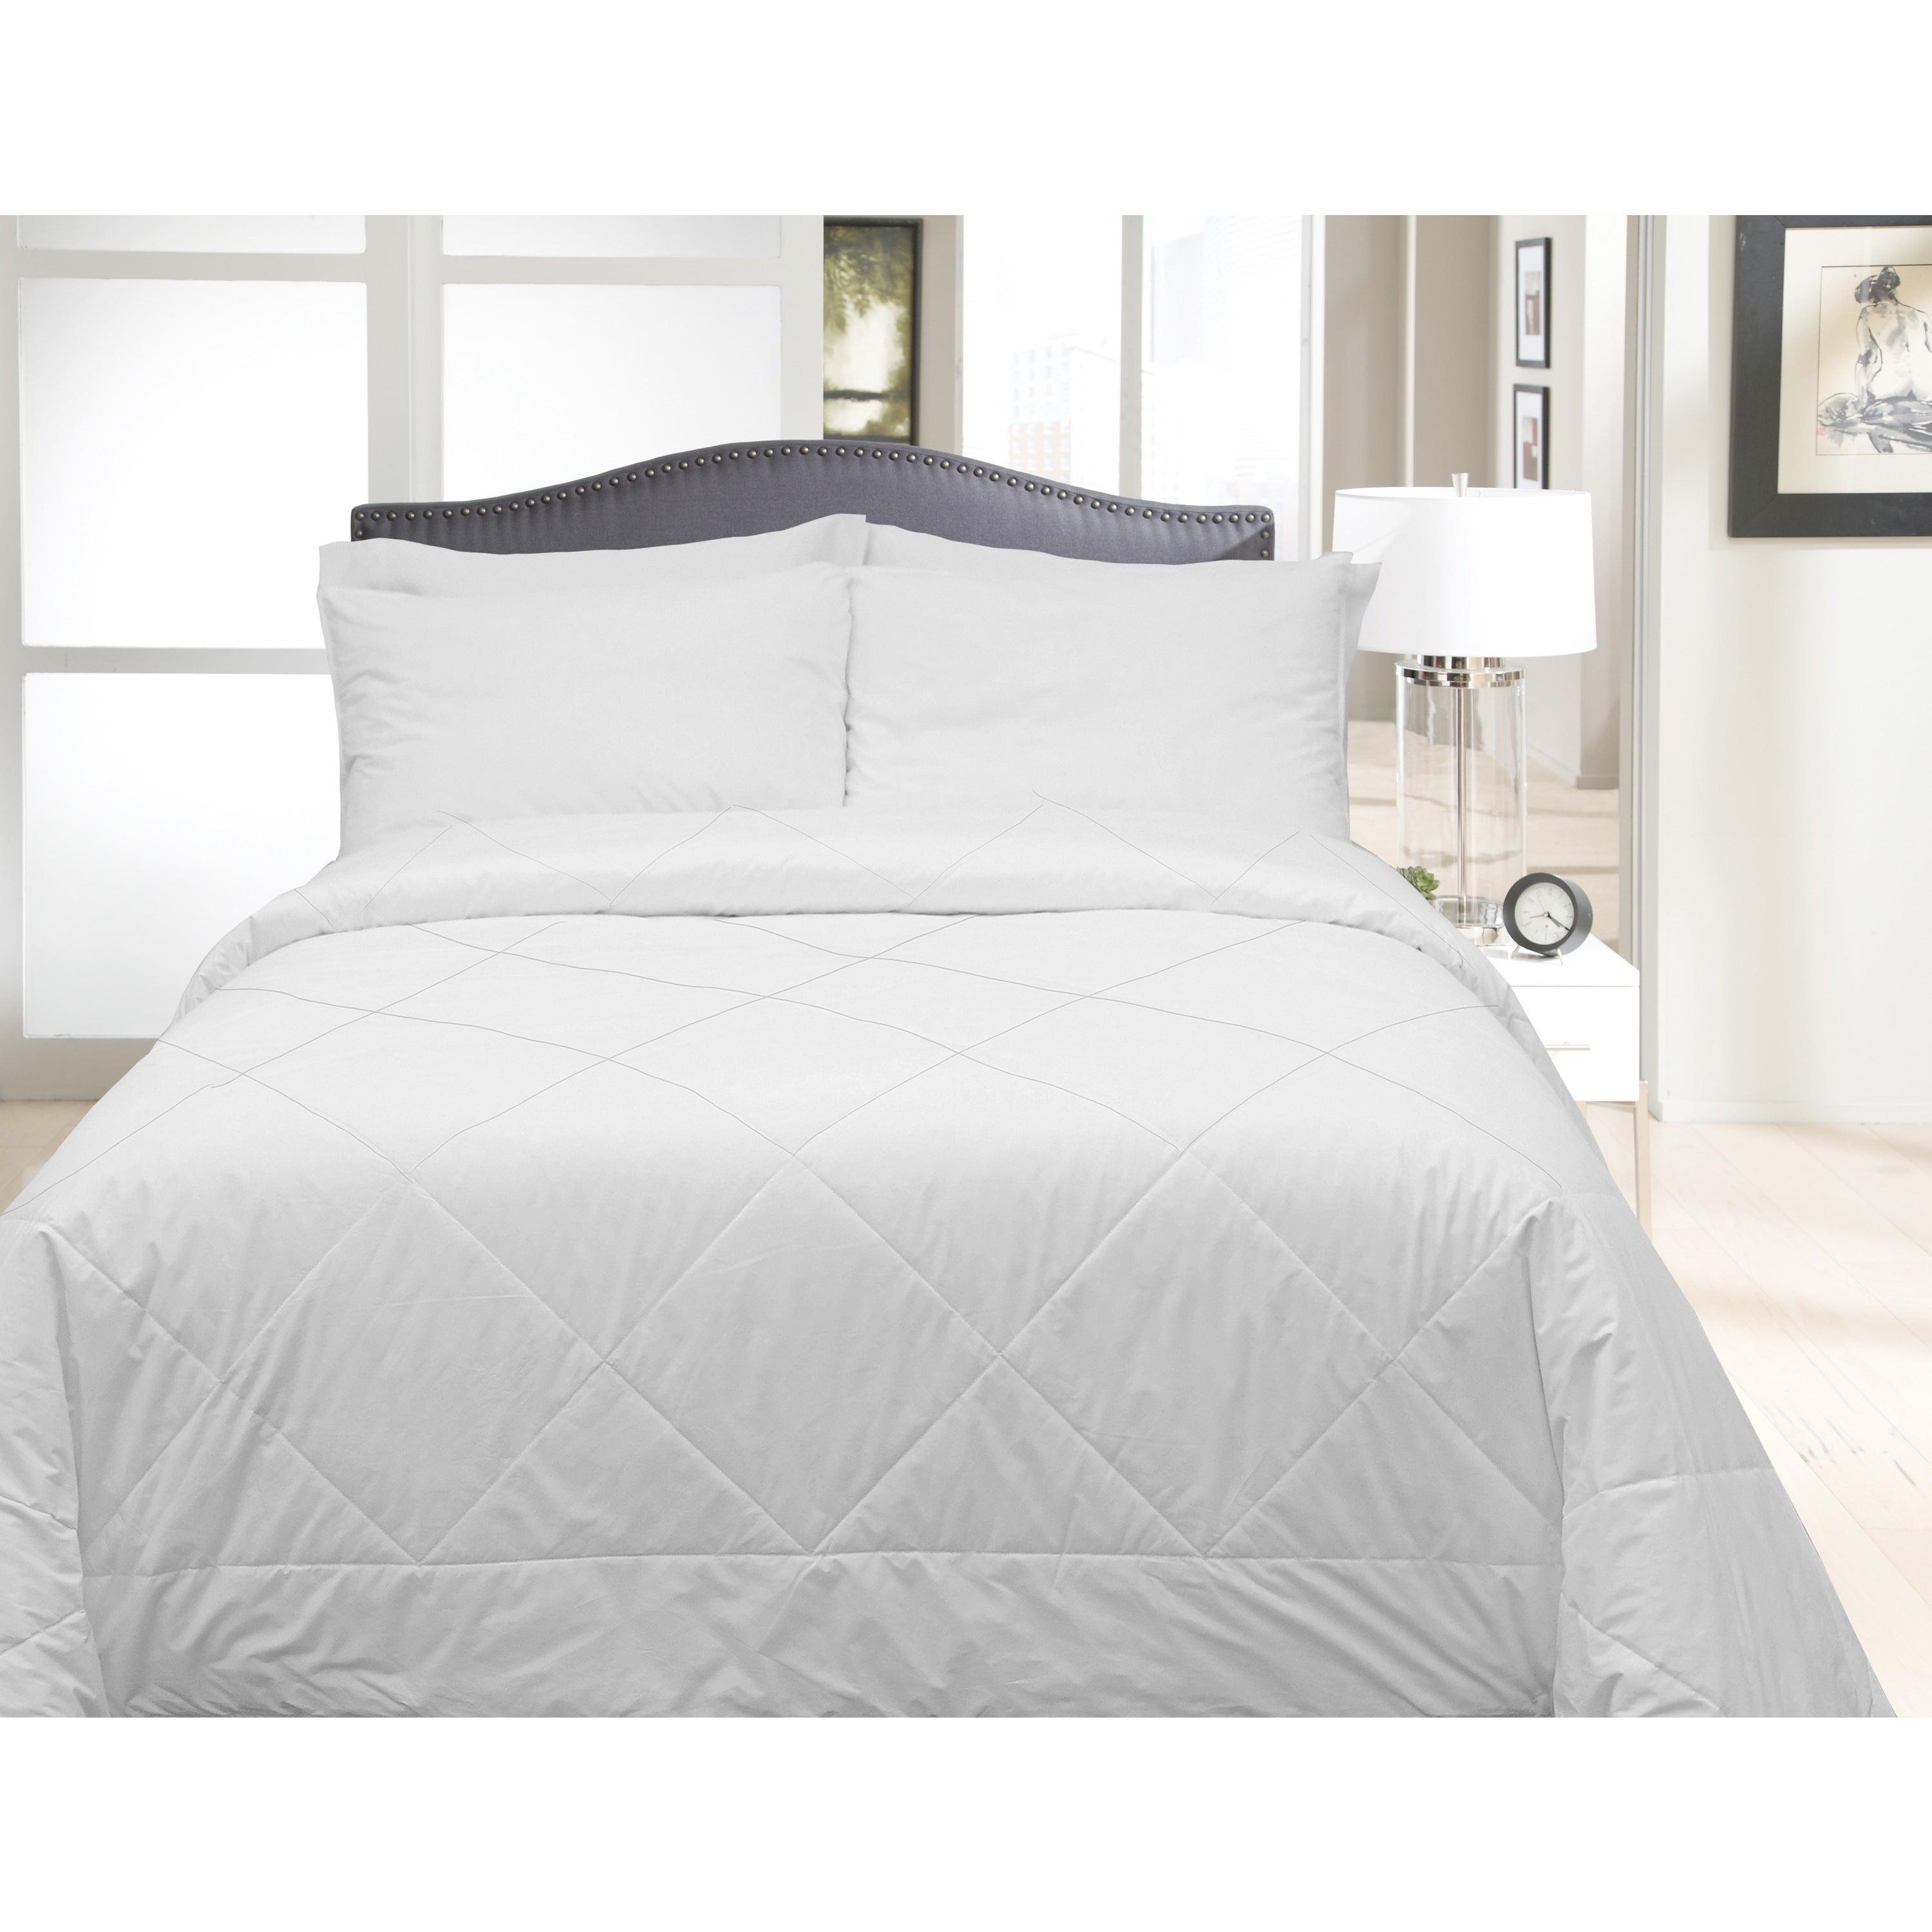 of momme and bedding sheets set mulberry silk luxury cover comforter duvet mommea king